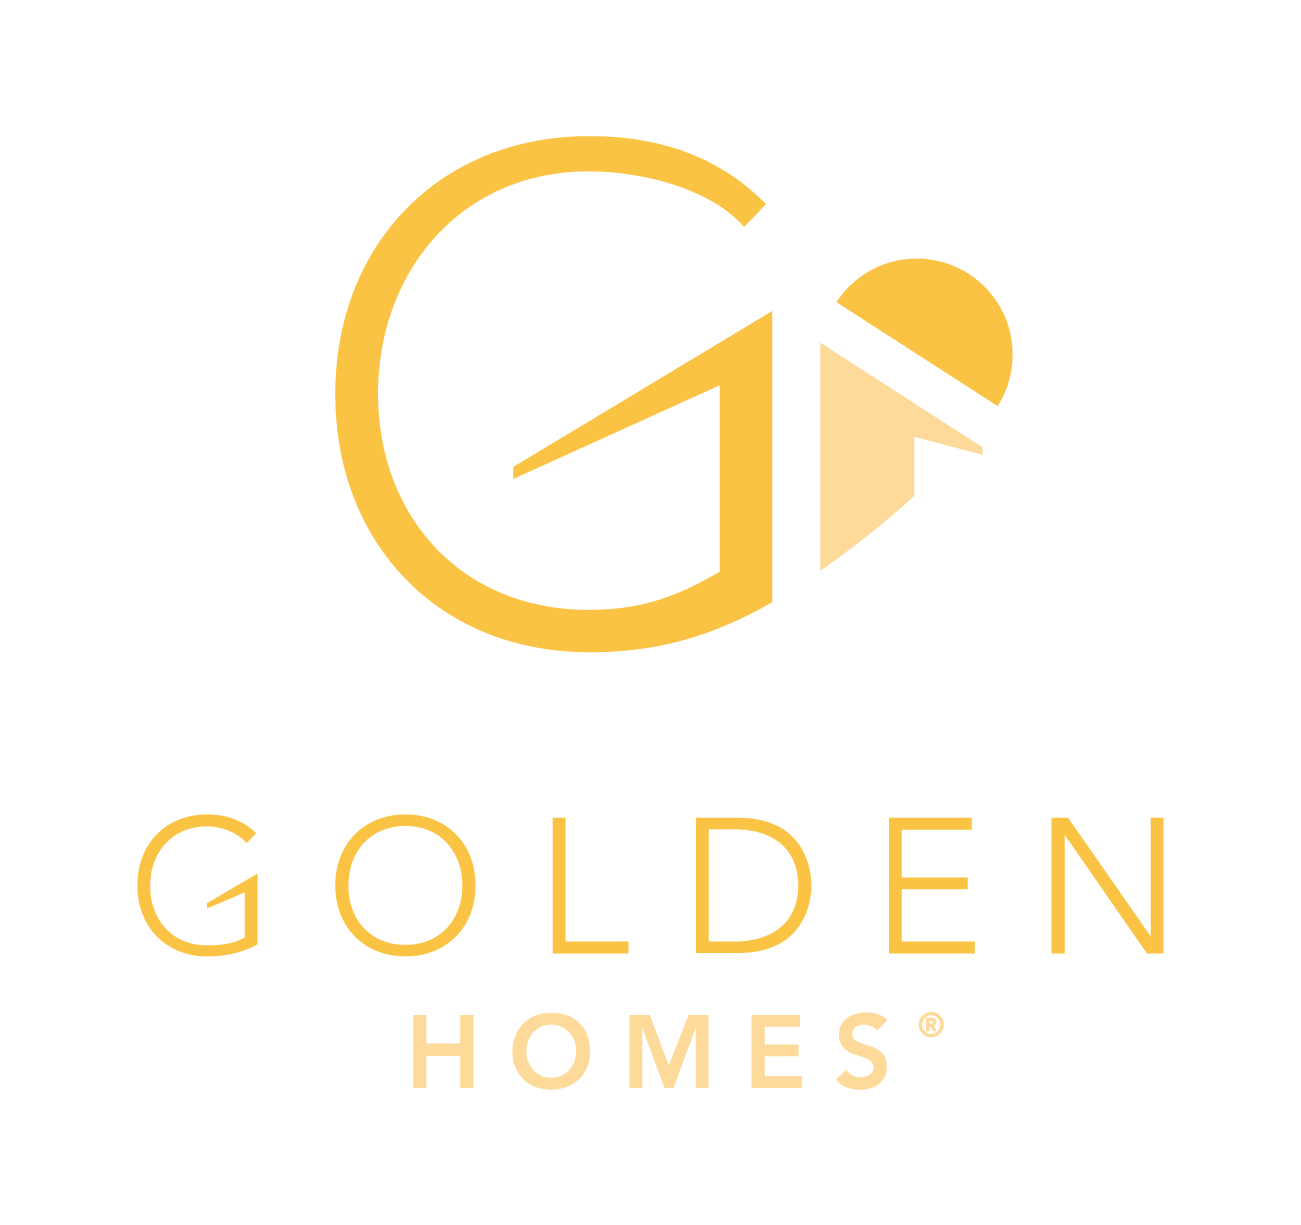 Golden Homes | New Homes on house plans mn, house plans india, house plans id, house plans ireland, house plans la, house plans lk, house plans fr, house plans cat, house plans european, house plans uk,